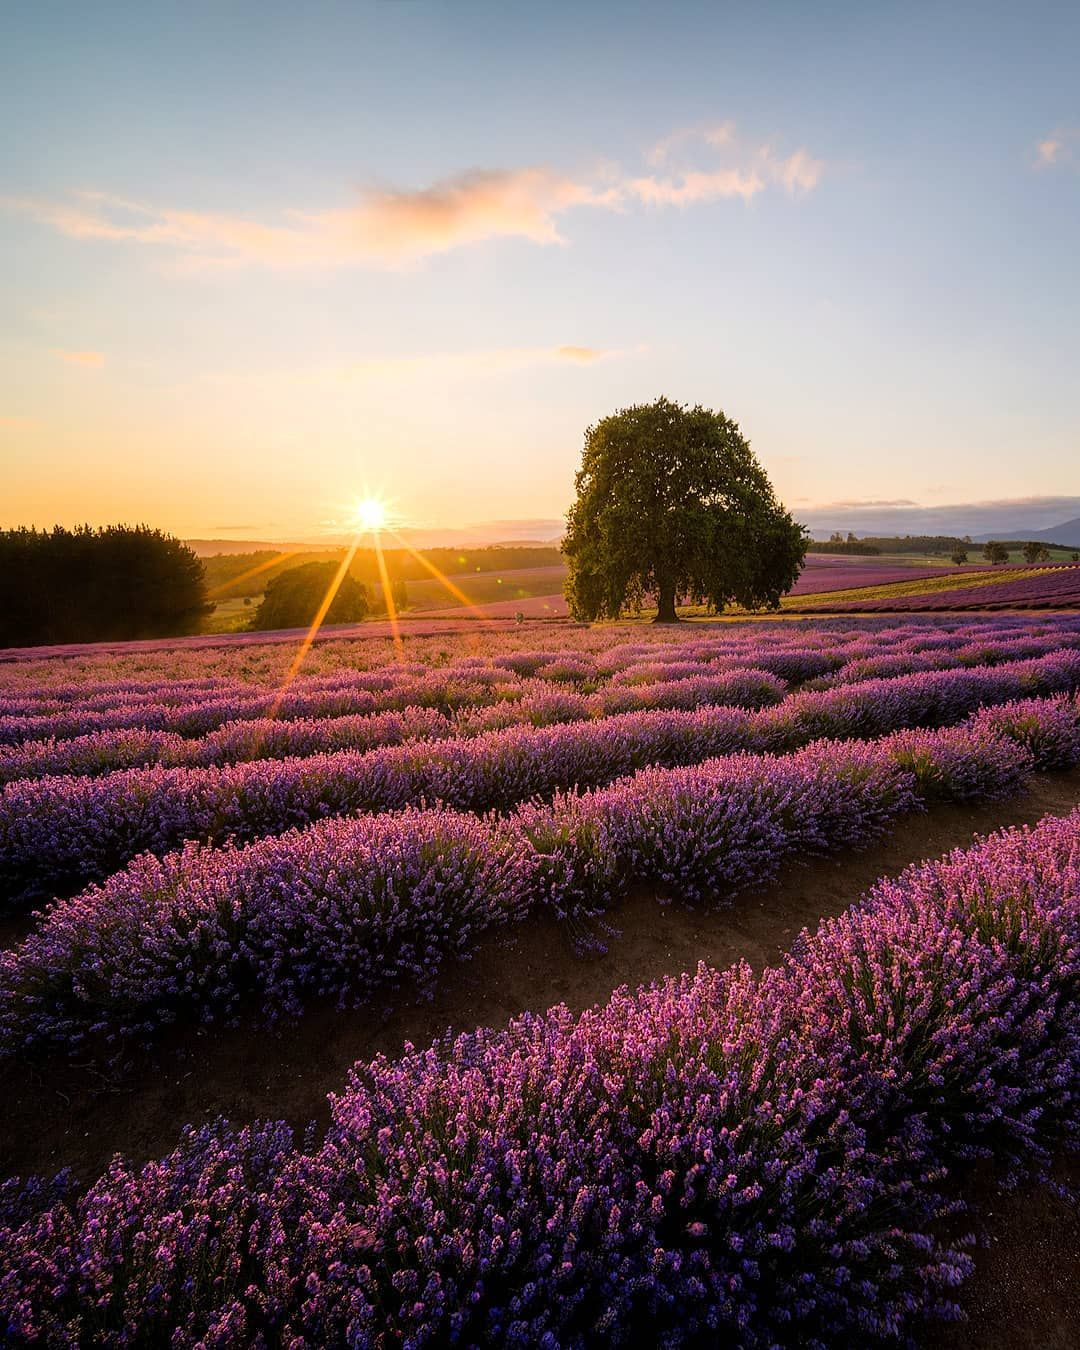 Sunrise At Bridestowe Lavender Farm The Best Smelling Farm You Ll Probably Ever Visit Beautyoft In 2020 Tasmania Road Trip Amazing Travel Destinations Nature Plants